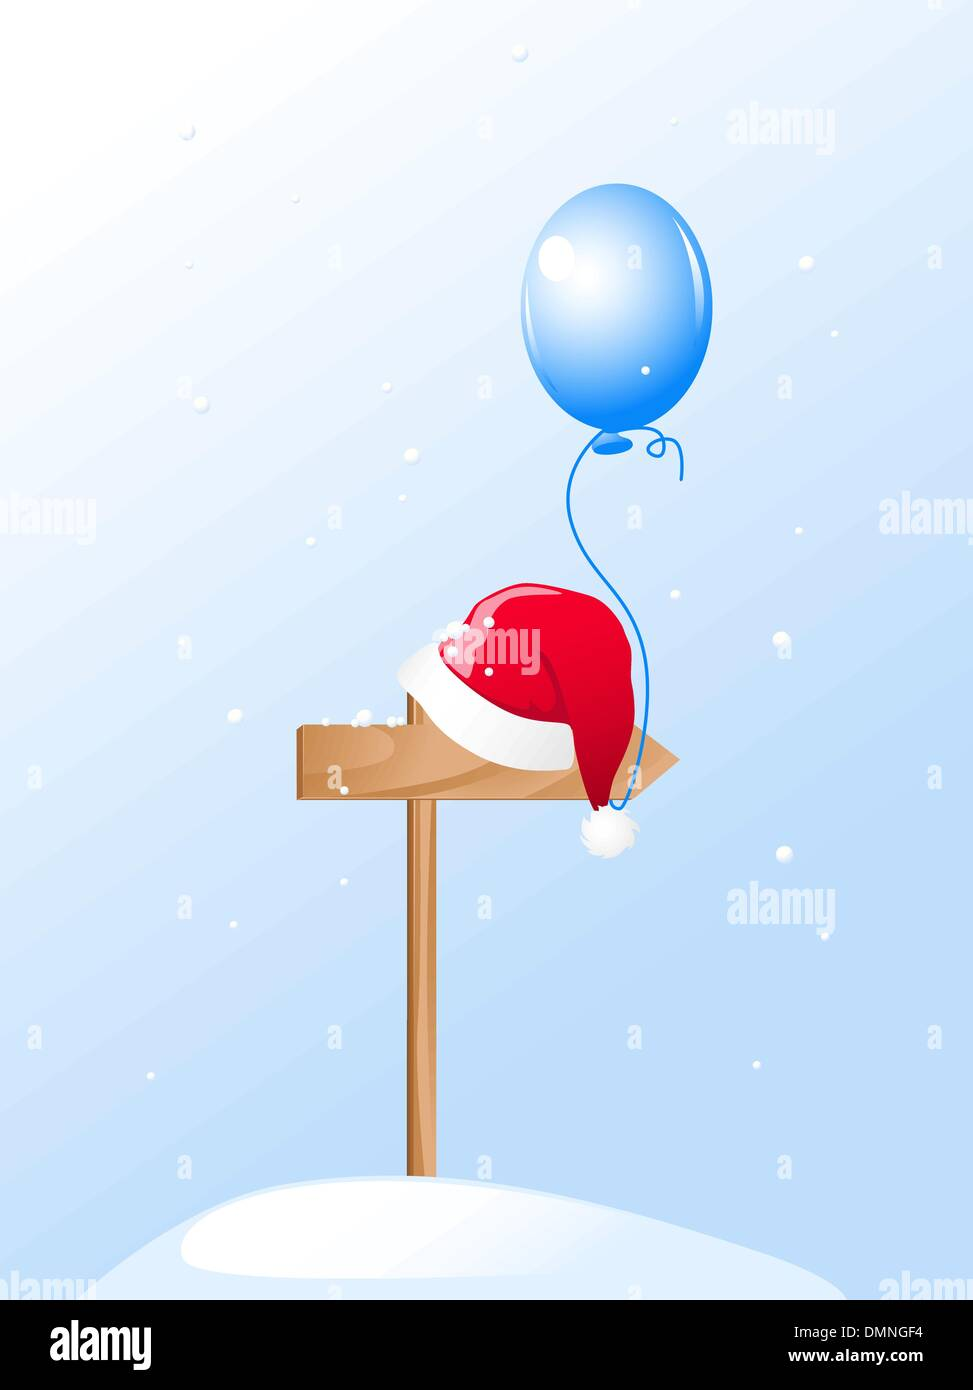 Santa's Hat and blue balloon - Stock Image